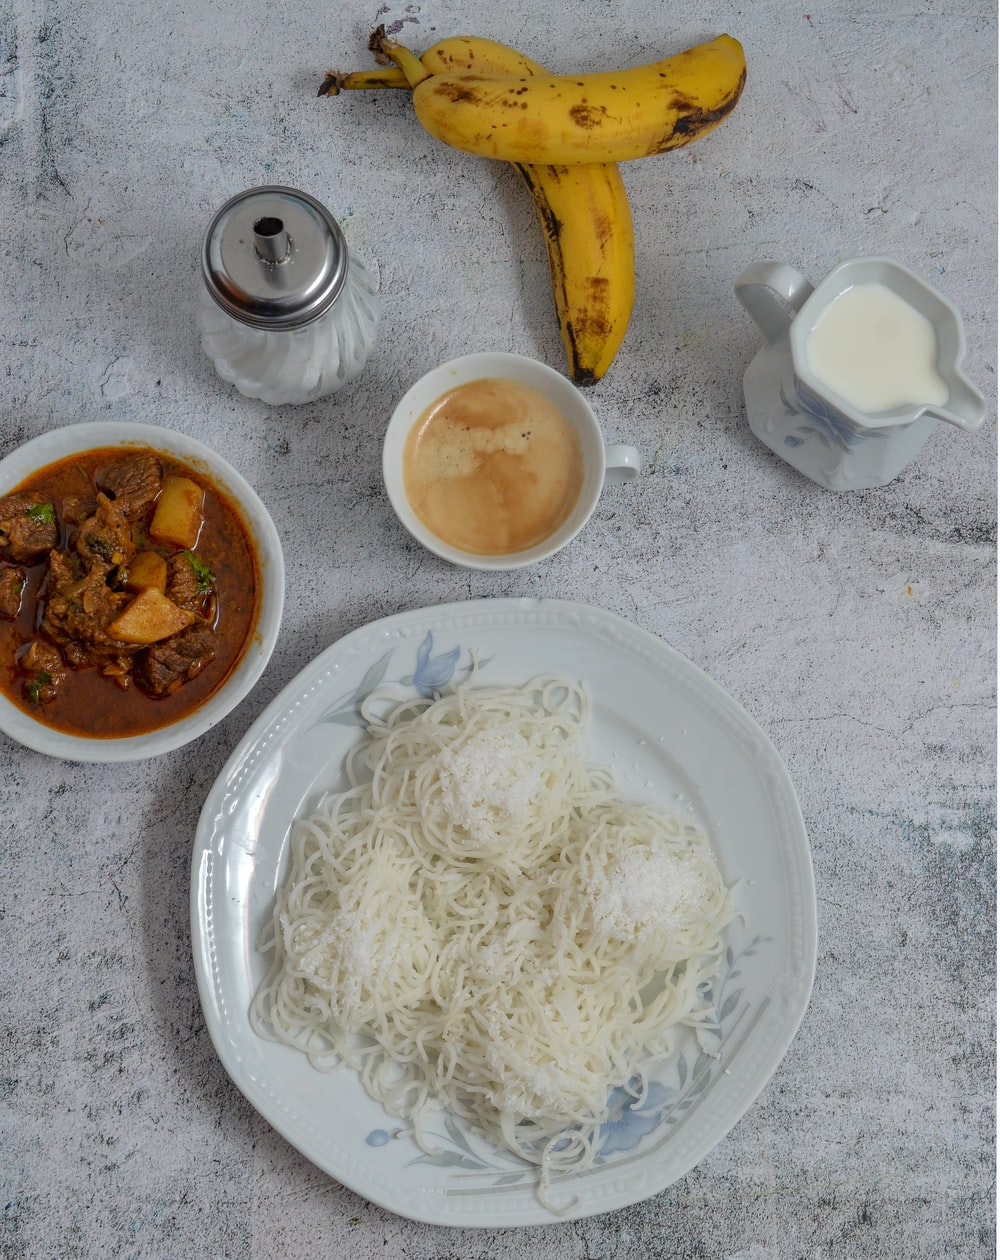 white ceramic plate with pasta and brown sauce